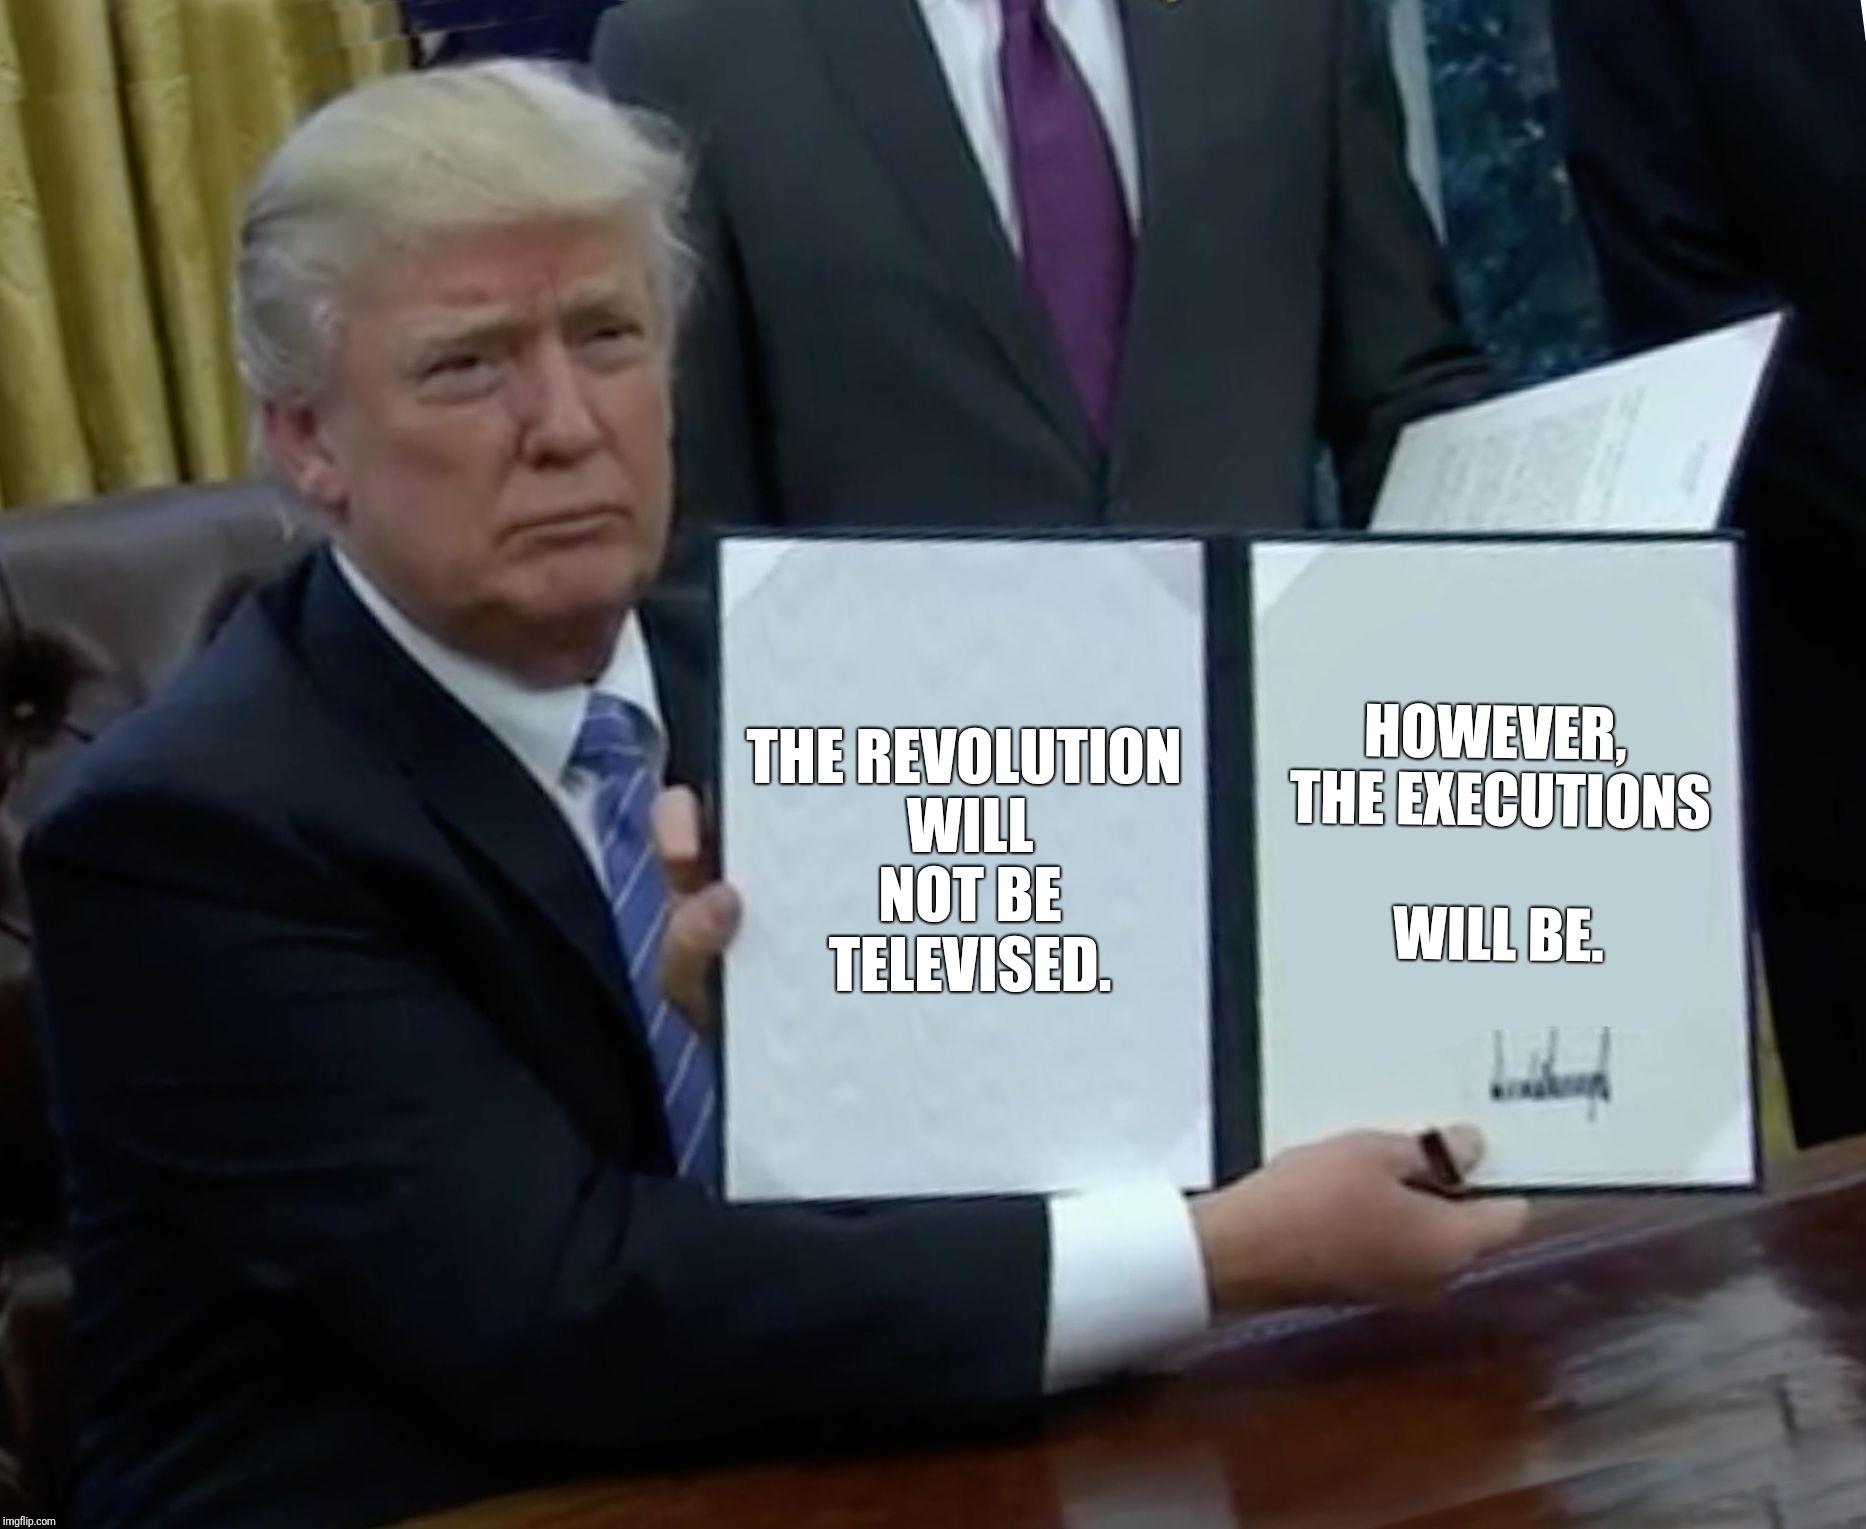 Trump Bill Signing Meme | THE REVOLUTION WILL NOT BE TELEVISED. HOWEVER, THE EXECUTIONS WILL BE. | image tagged in memes,trump bill signing | made w/ Imgflip meme maker